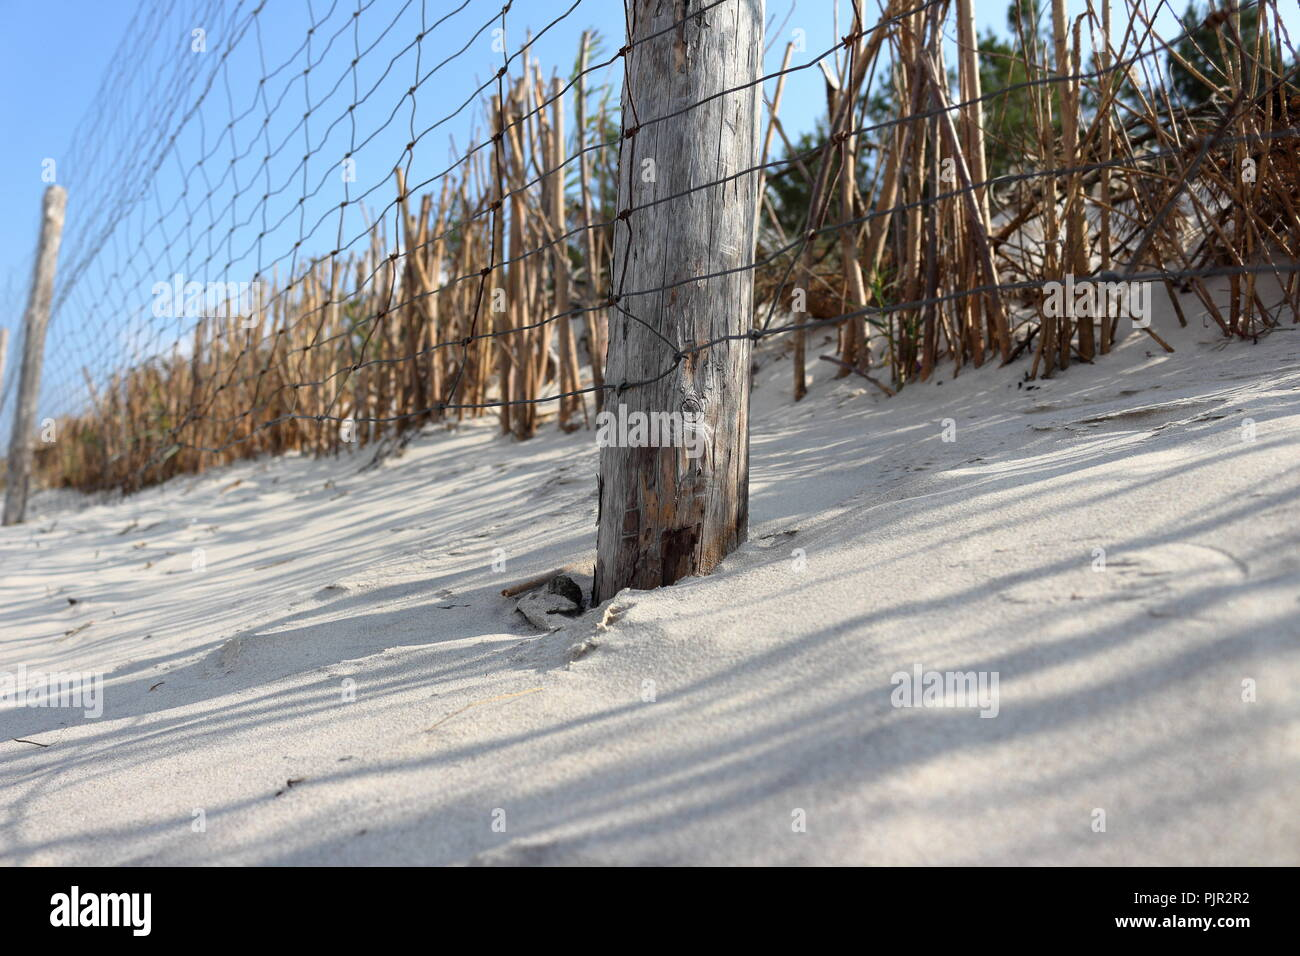 Wire fence protecting area of sand dunes and its vegetation - Stock Image